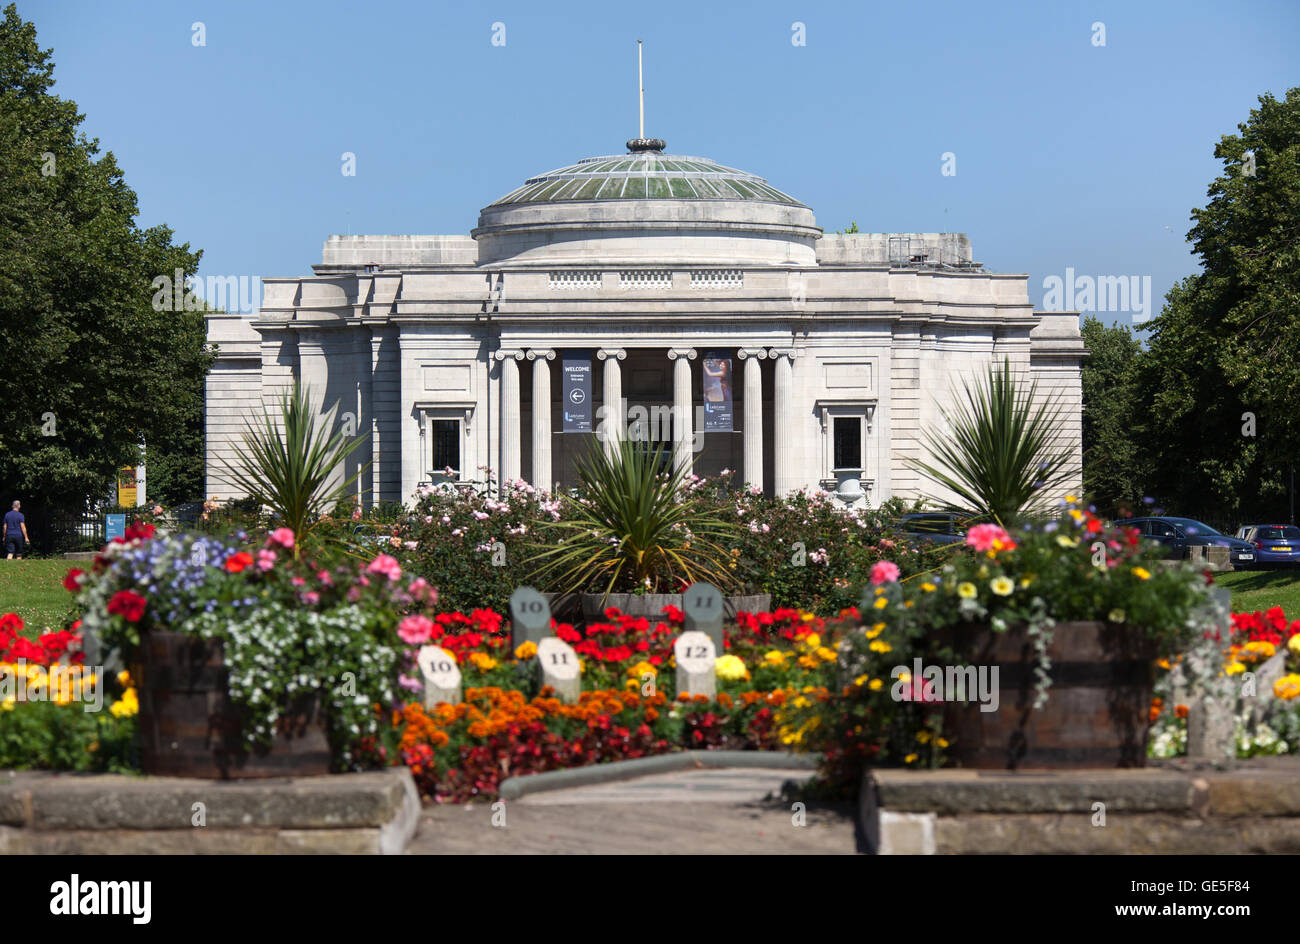 Village of Port Sunlight, England. Picturesque summer view of the William and Segar Owen designed Lady Lever Art - Stock Image